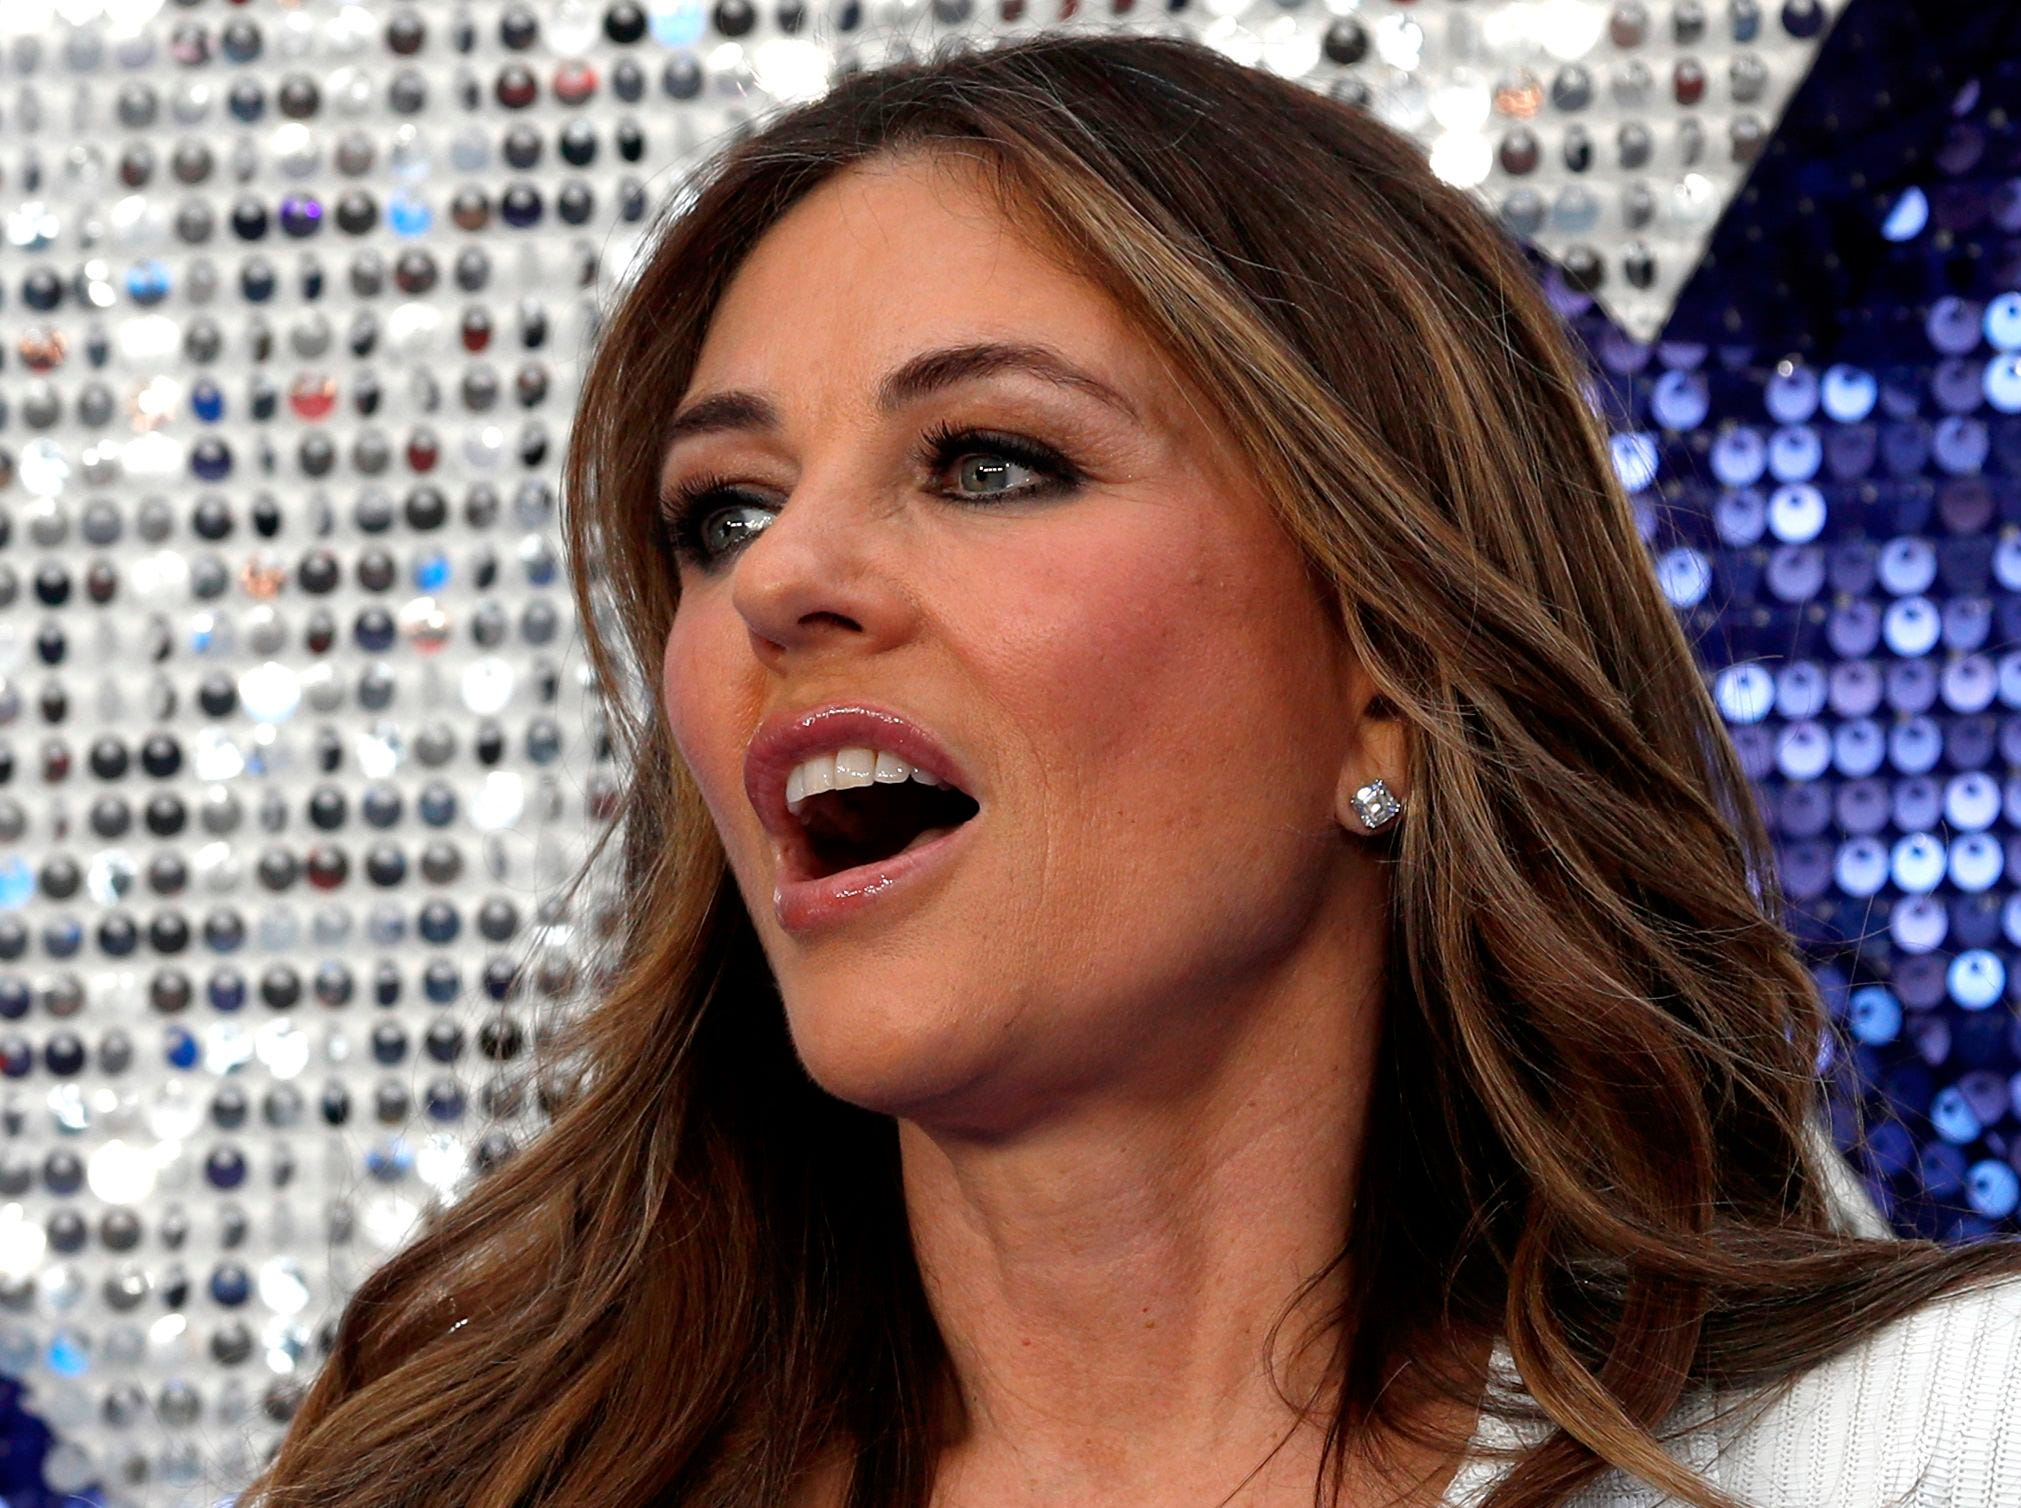 Liz Hurley poses on the red carpet before the UK premiere of the film Rocketman in London.